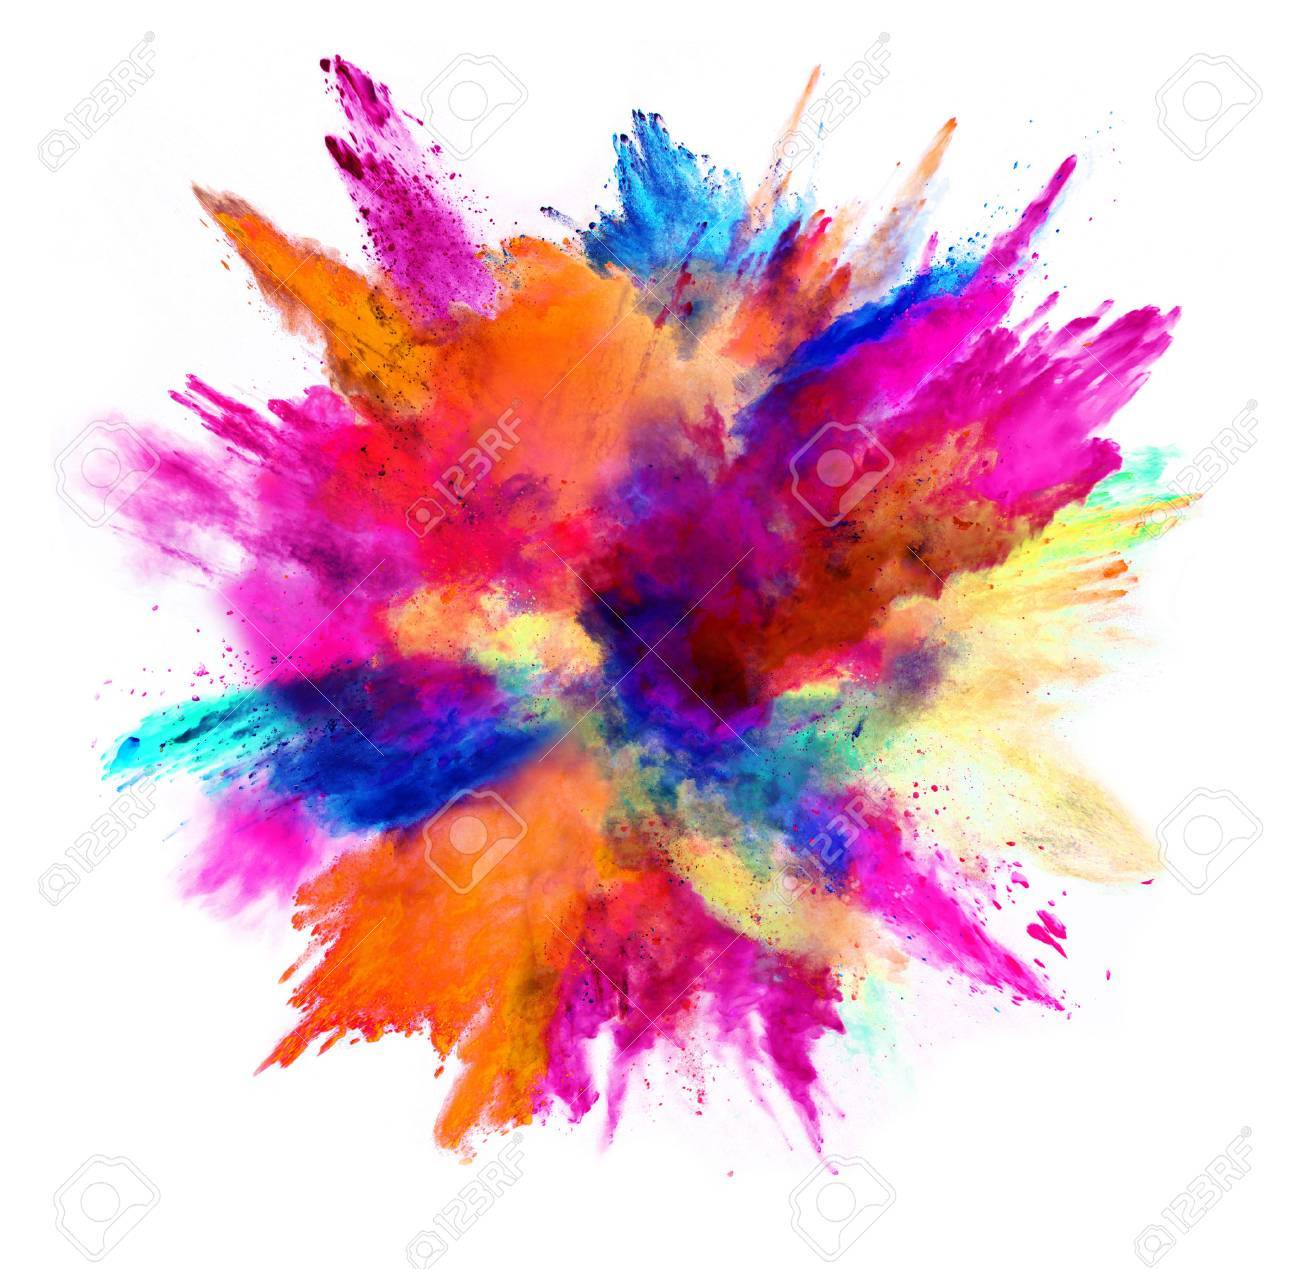 Explosion of colored powder, isolated on white background. Power and art concept, abstract blust of colors. - 76794585